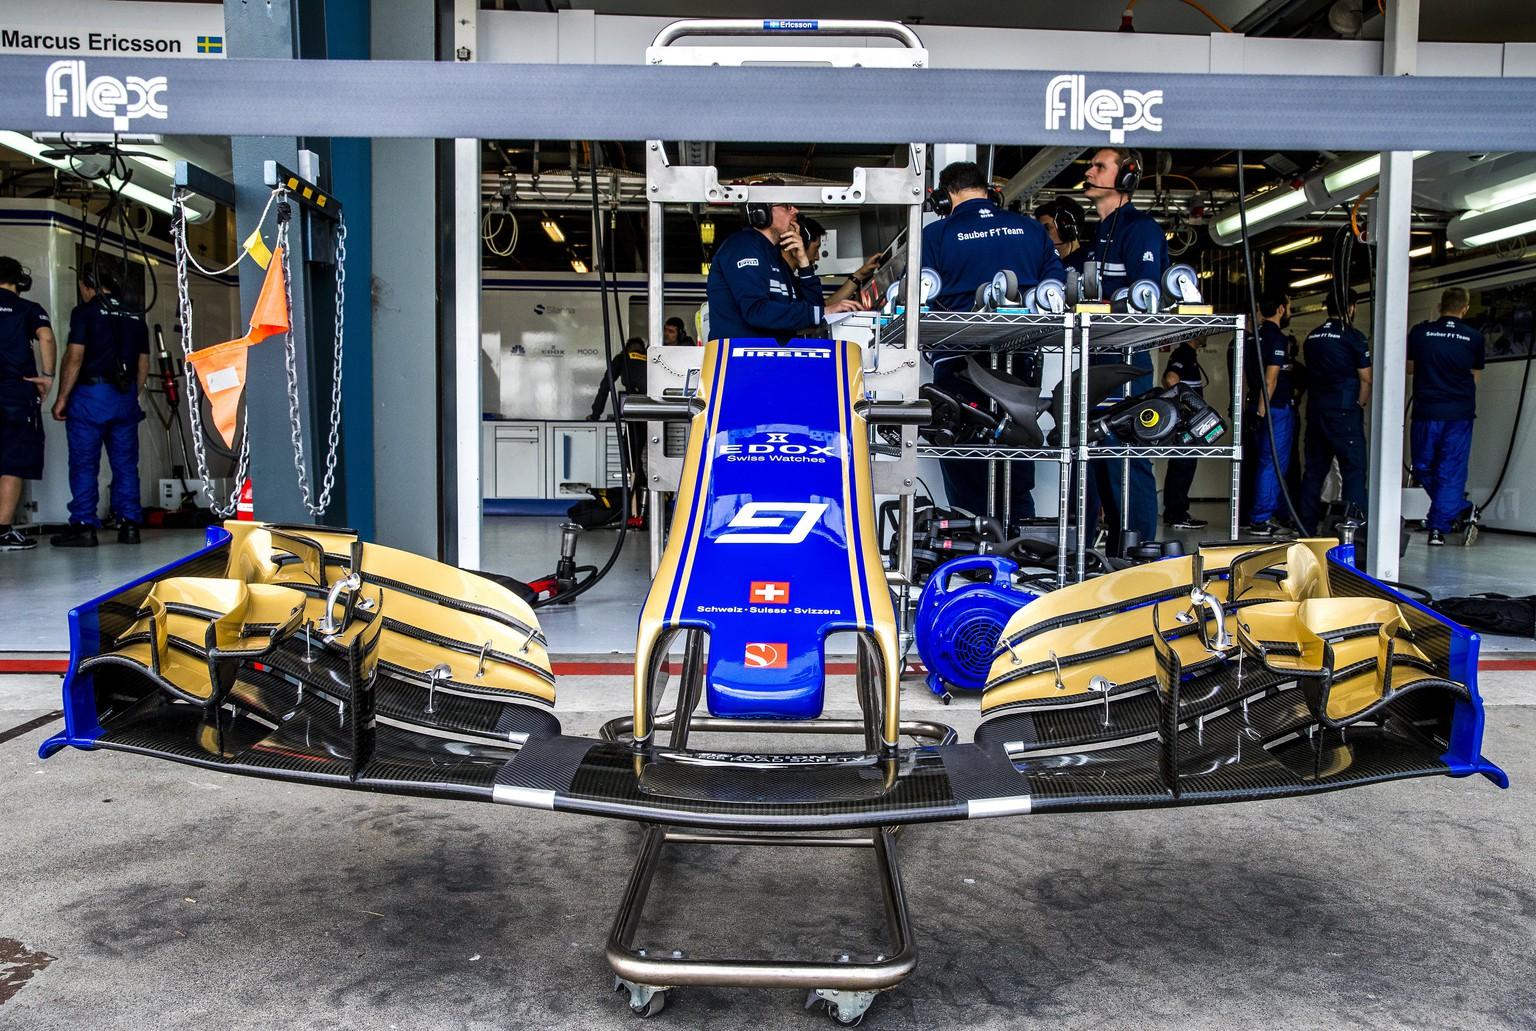 ARCHIVBILD ZUR PARTNERSCHAFT ZWISCHEN SAUBER UND ALFA ROMEO --- epa05867176 A front wing of Sweden's Marcus Ericsson of Sauber F1 Team car during the first practice session at Albert Park GP Circuit, in Melbourne, Australia, 24 March 2017. The 2017 Formula One Grand Prix of Australia will take place on 26 March 2017.  EPA/SRDJAN SUKI